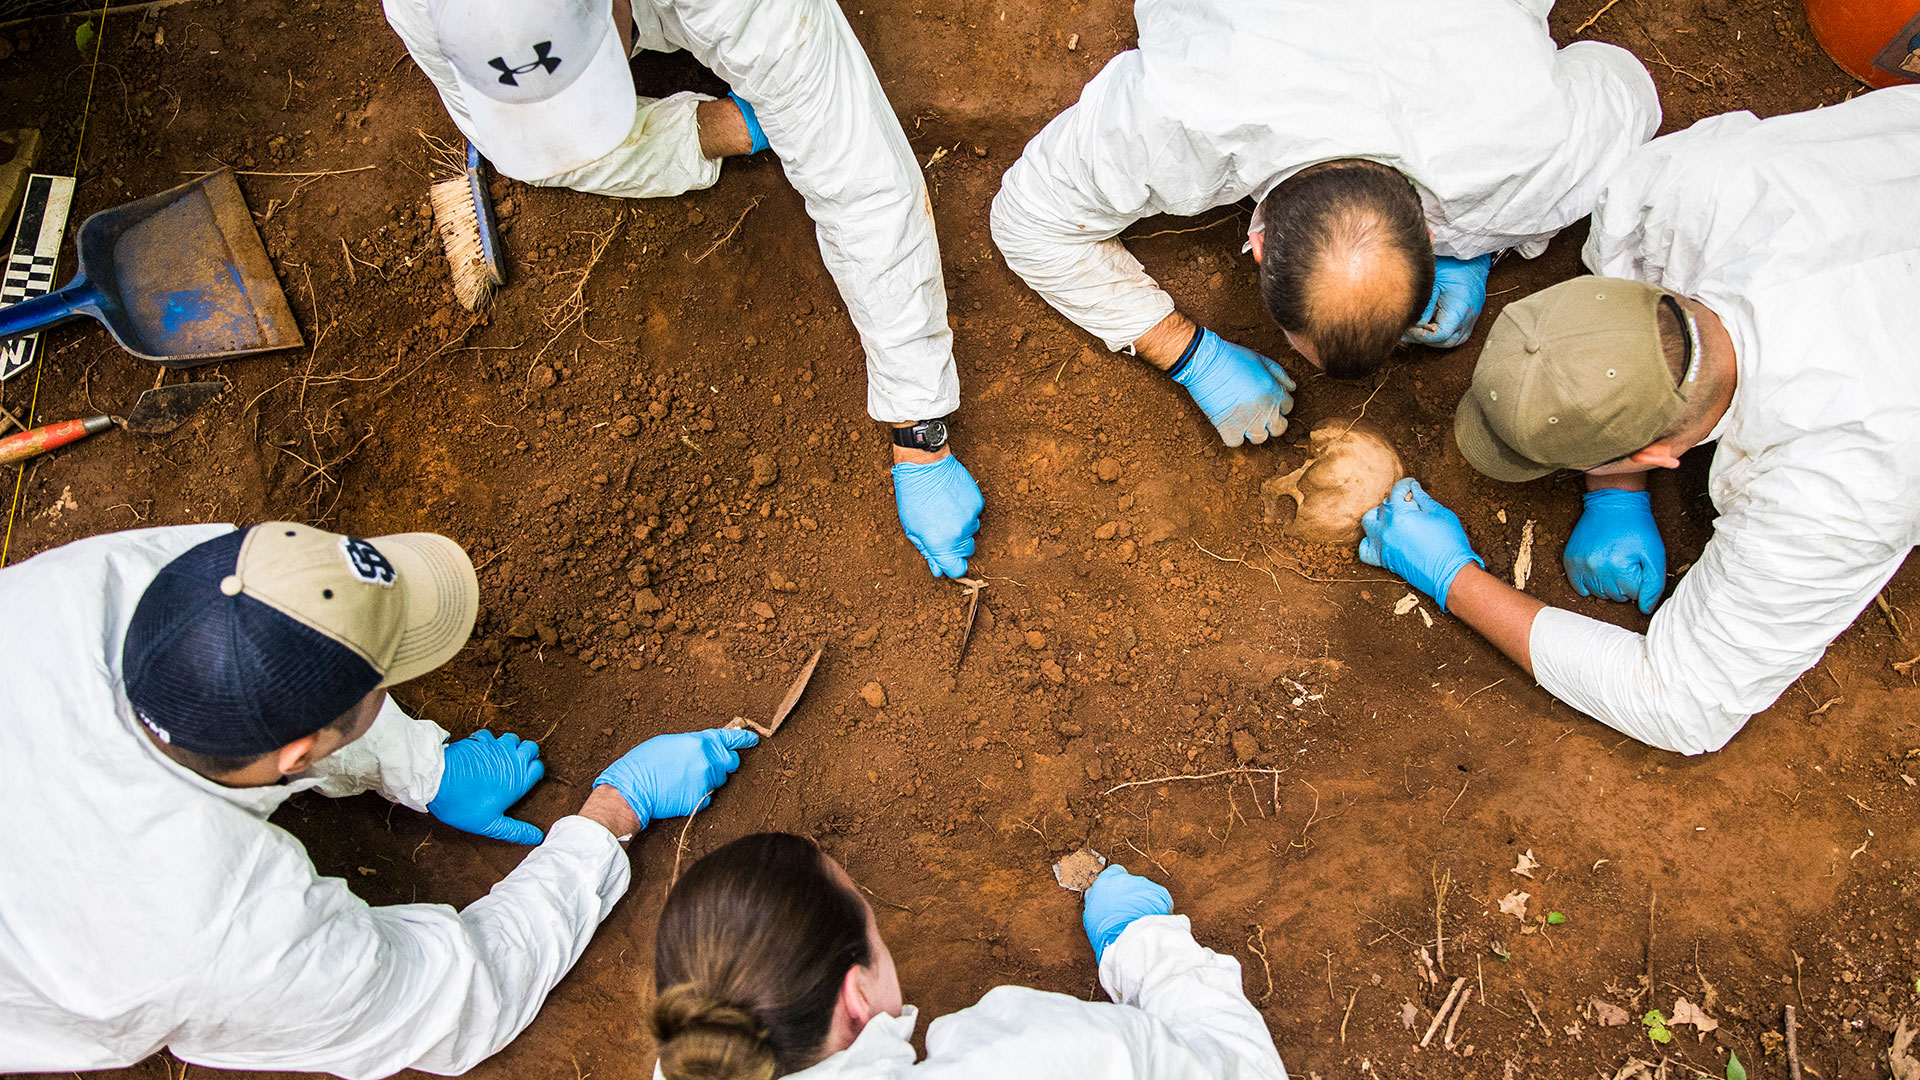 What Motivates People to Donate Their Bodies to a Body Farm?